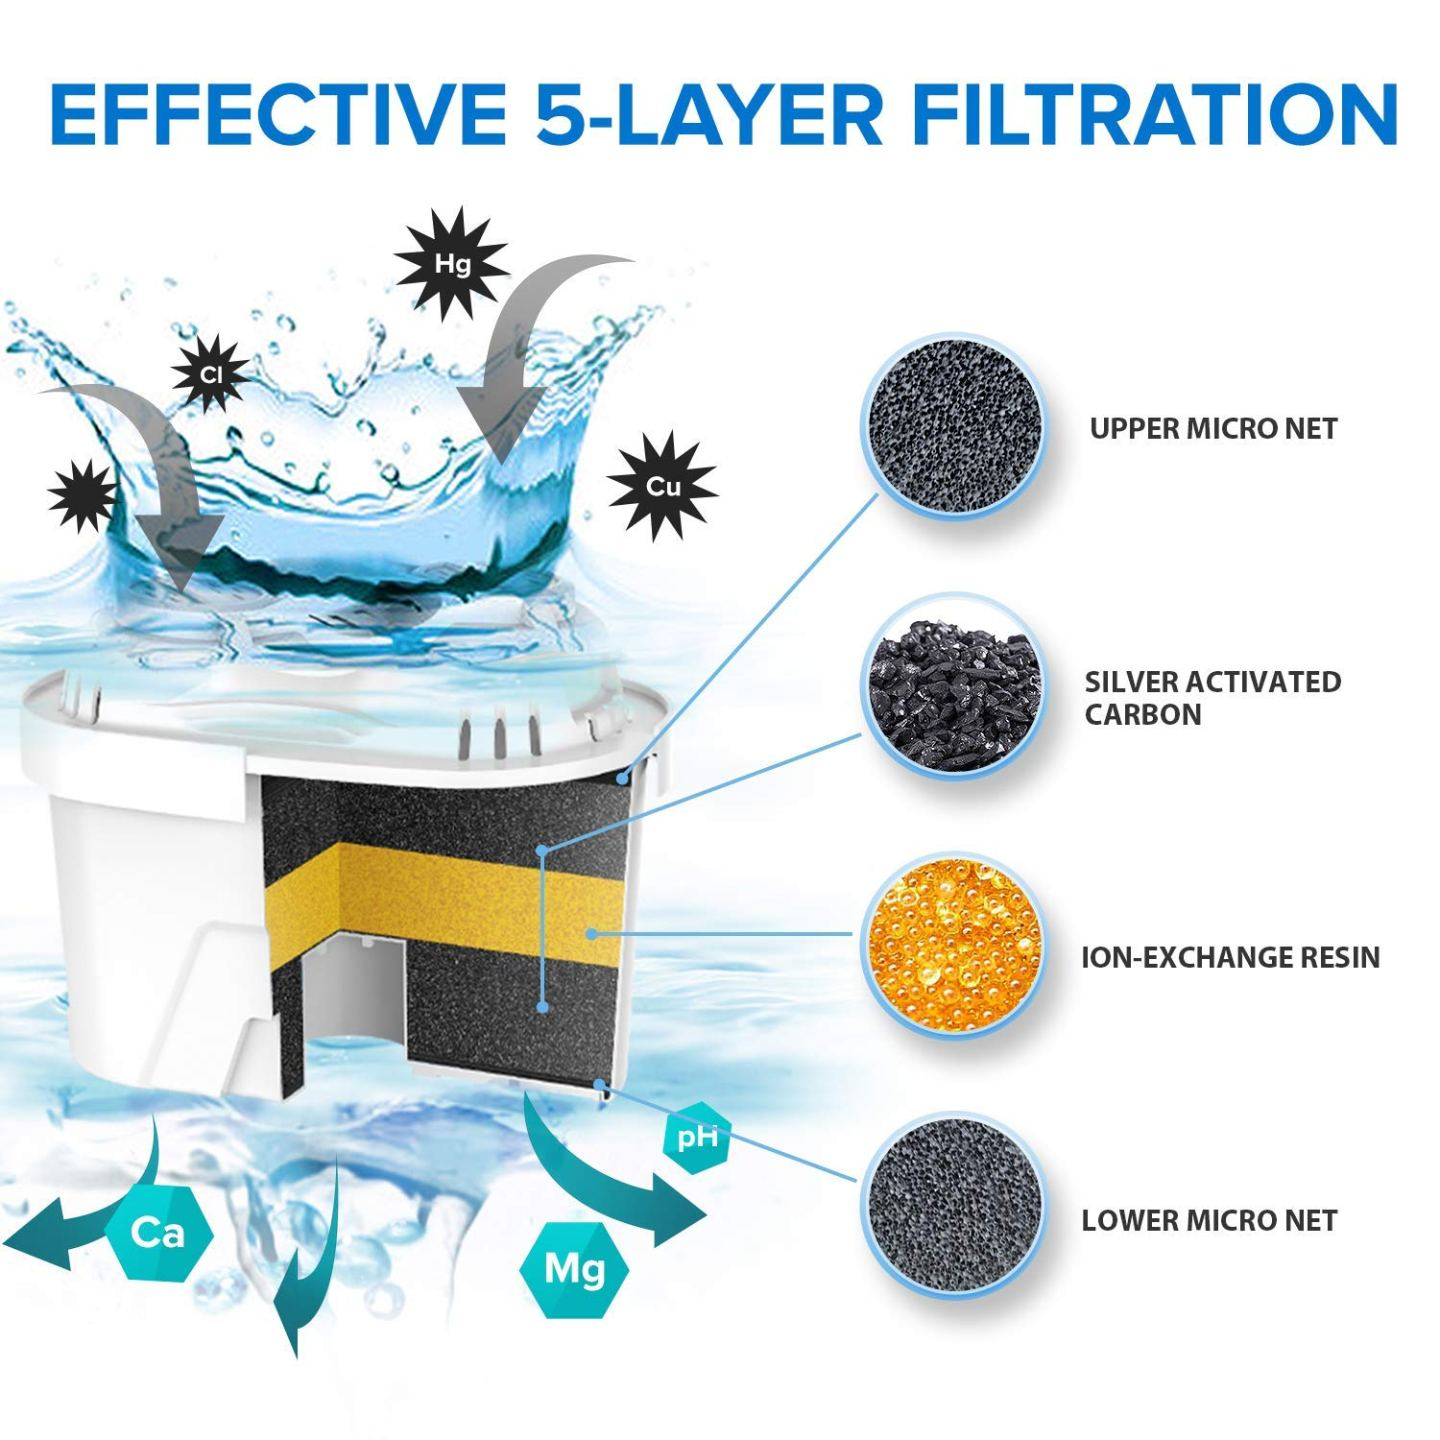 A diagram provided by Levoit showing the different layers of the filter.